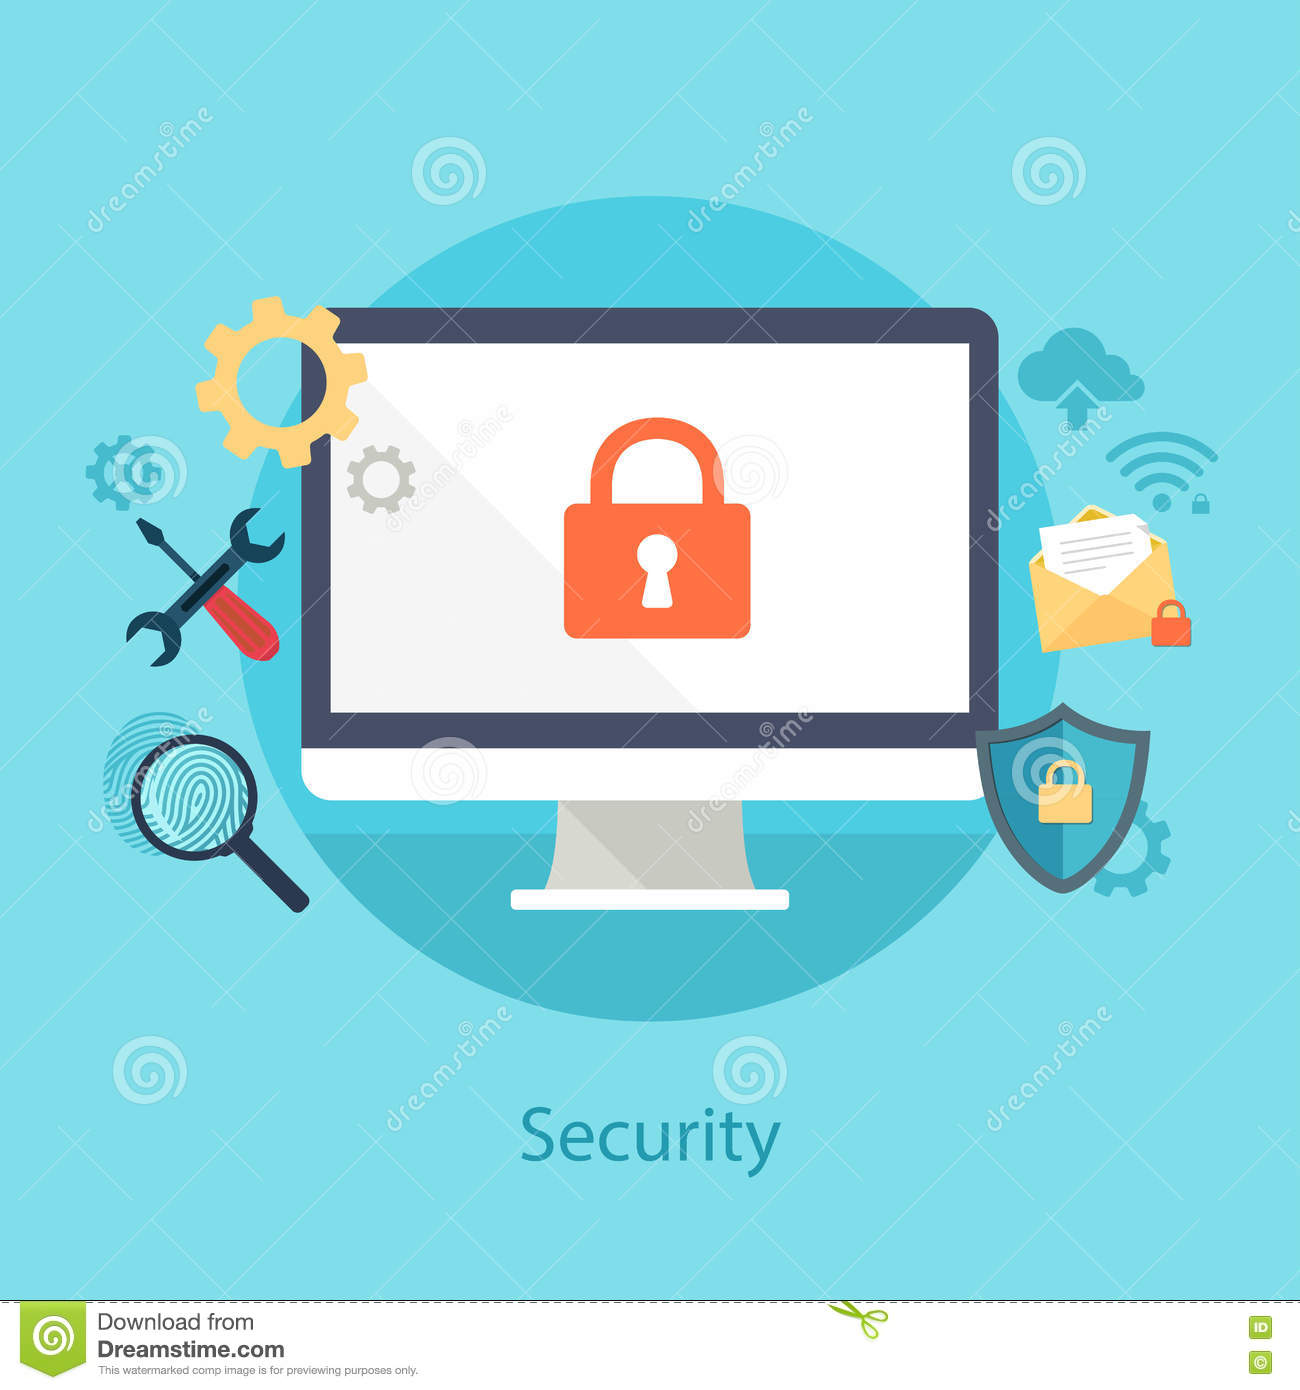 How To Design A Cyber Security Plans